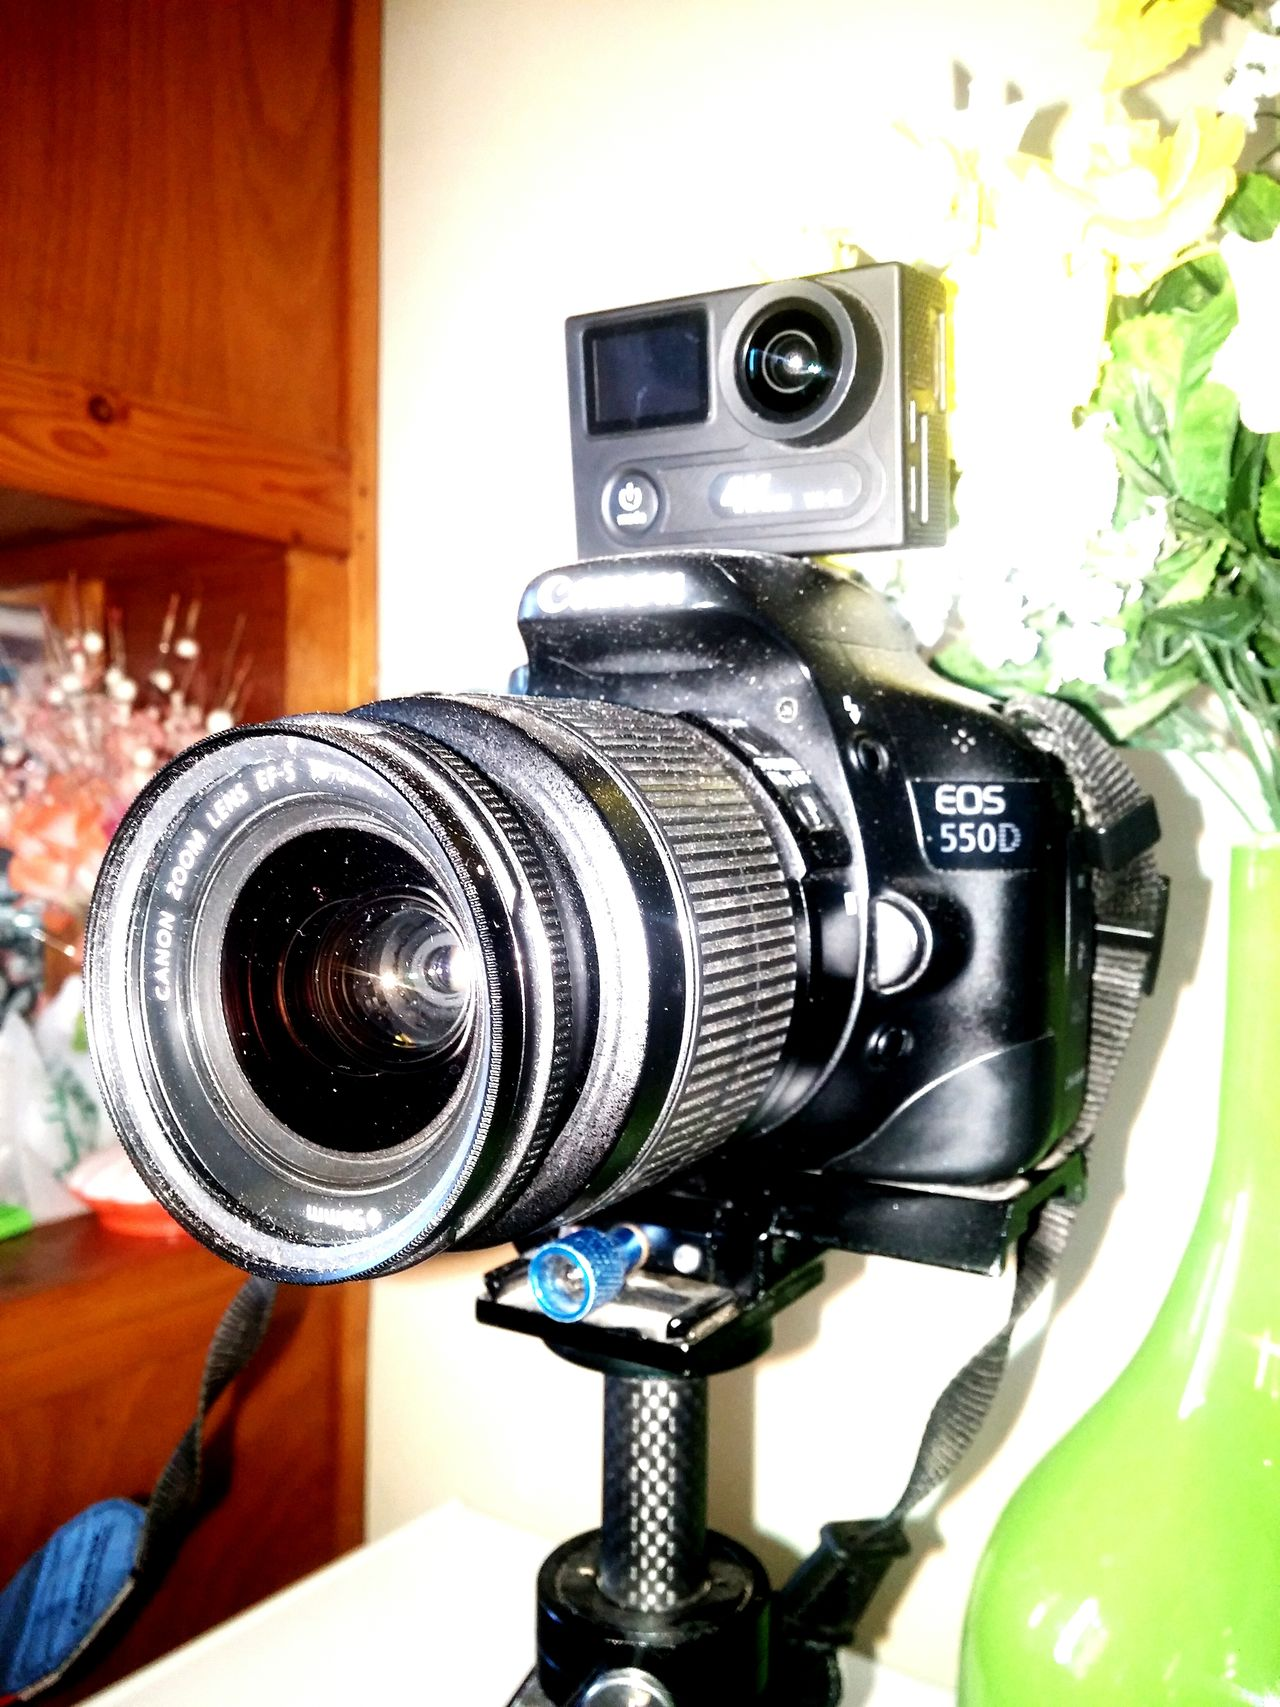 Canon POV GoprophotographyIndoors  GoPrography Canonphotography Gopro Goprooftheday Flycam Glidecam POVshots Goprohero First Eyeem Photo Canon_photos Close-up